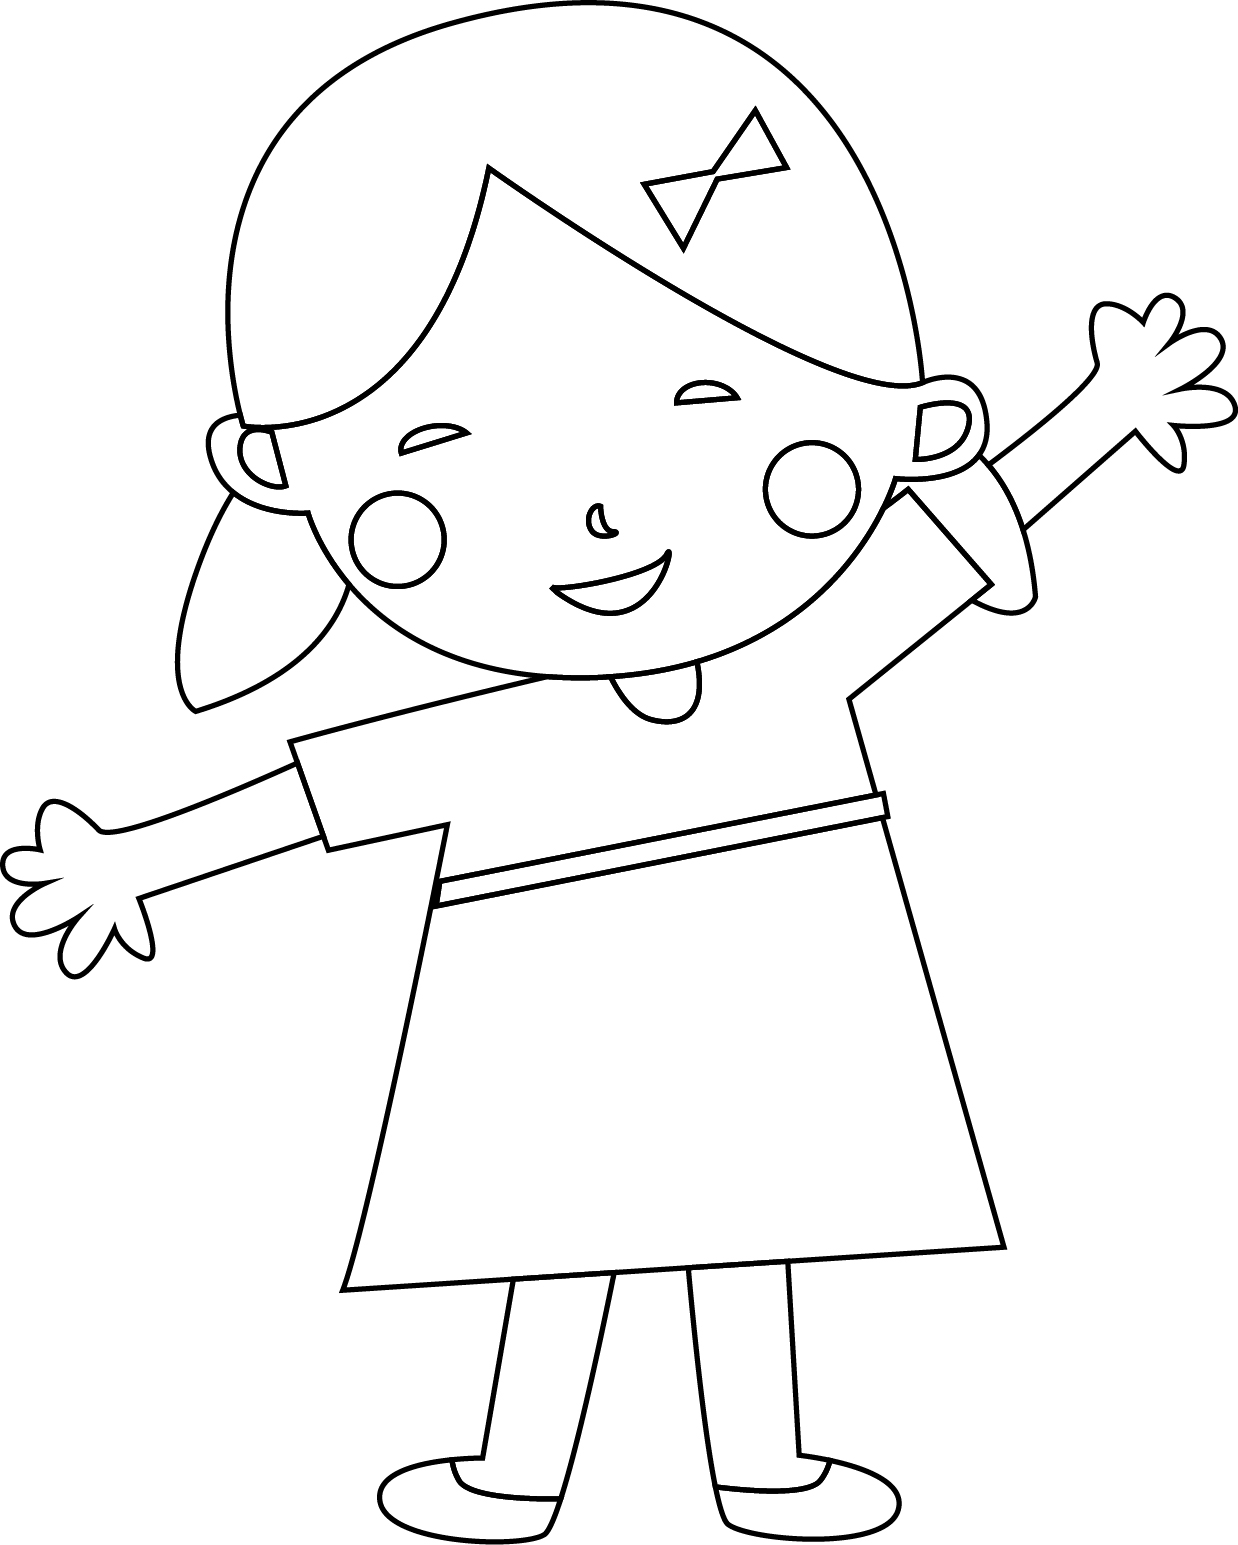 child coloring page - Child Coloring Pages